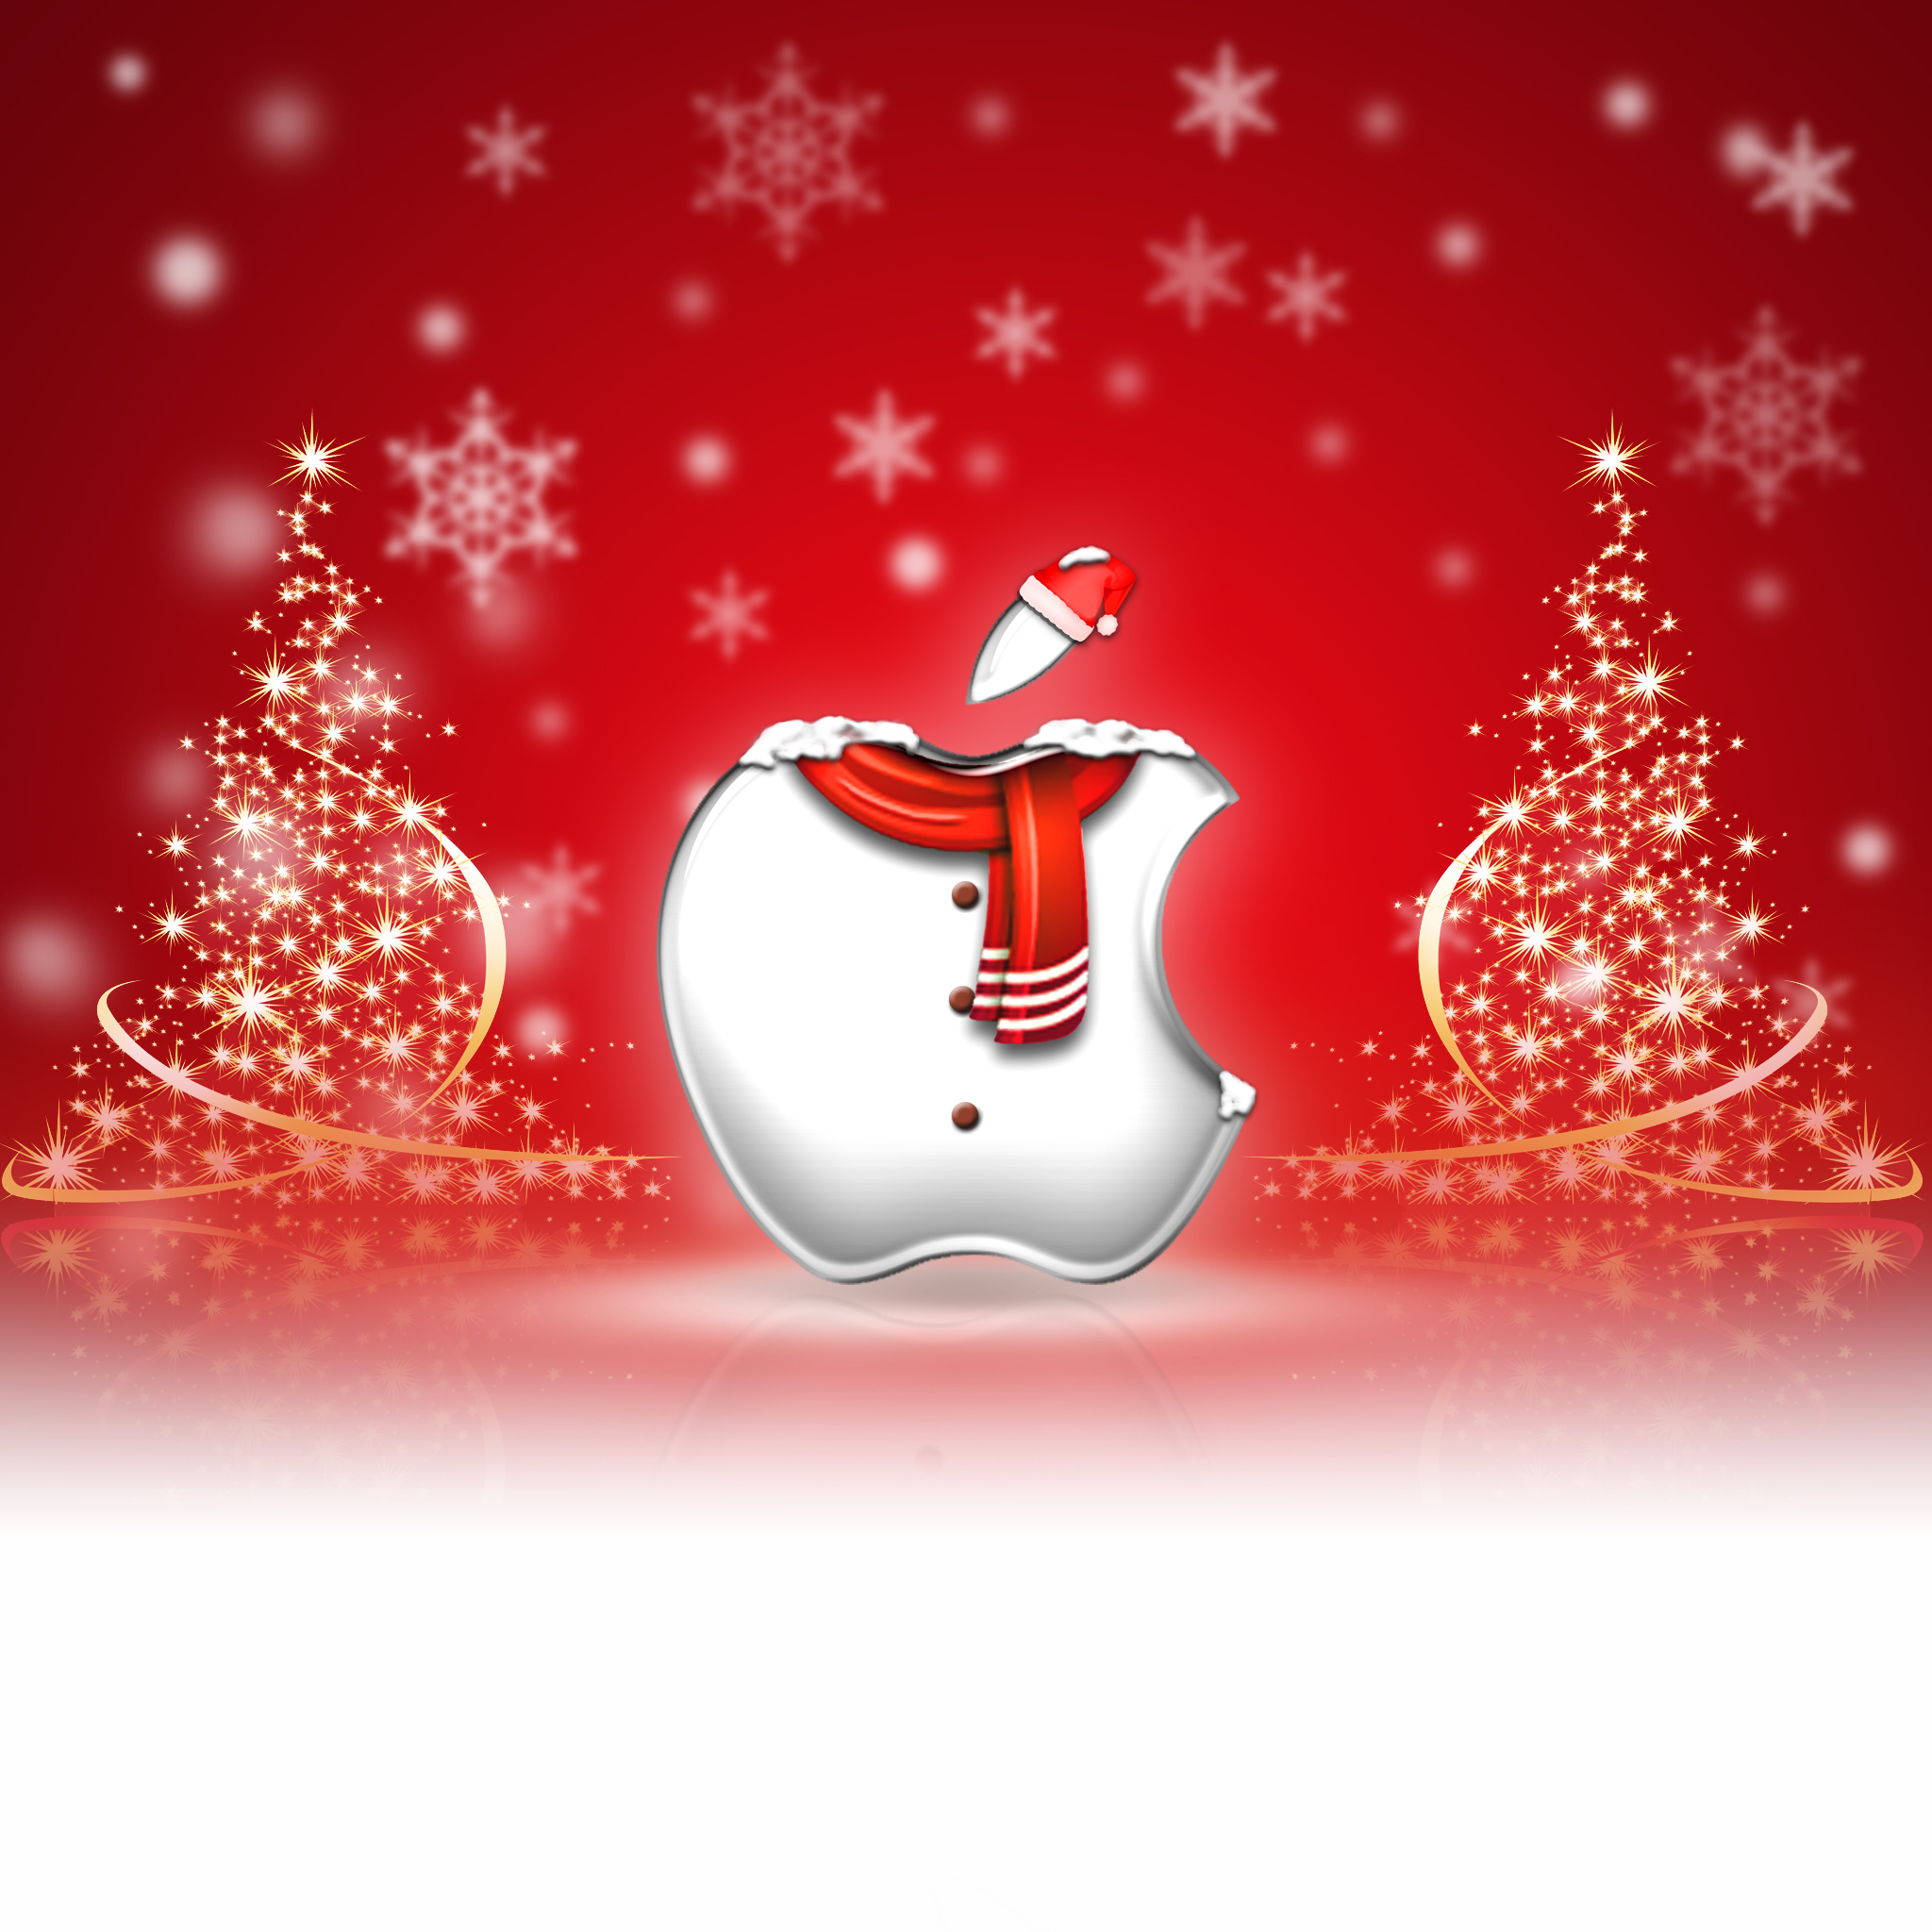 sfondi-buon-natale-ipad-3-4-retina-display-2012-2013-19